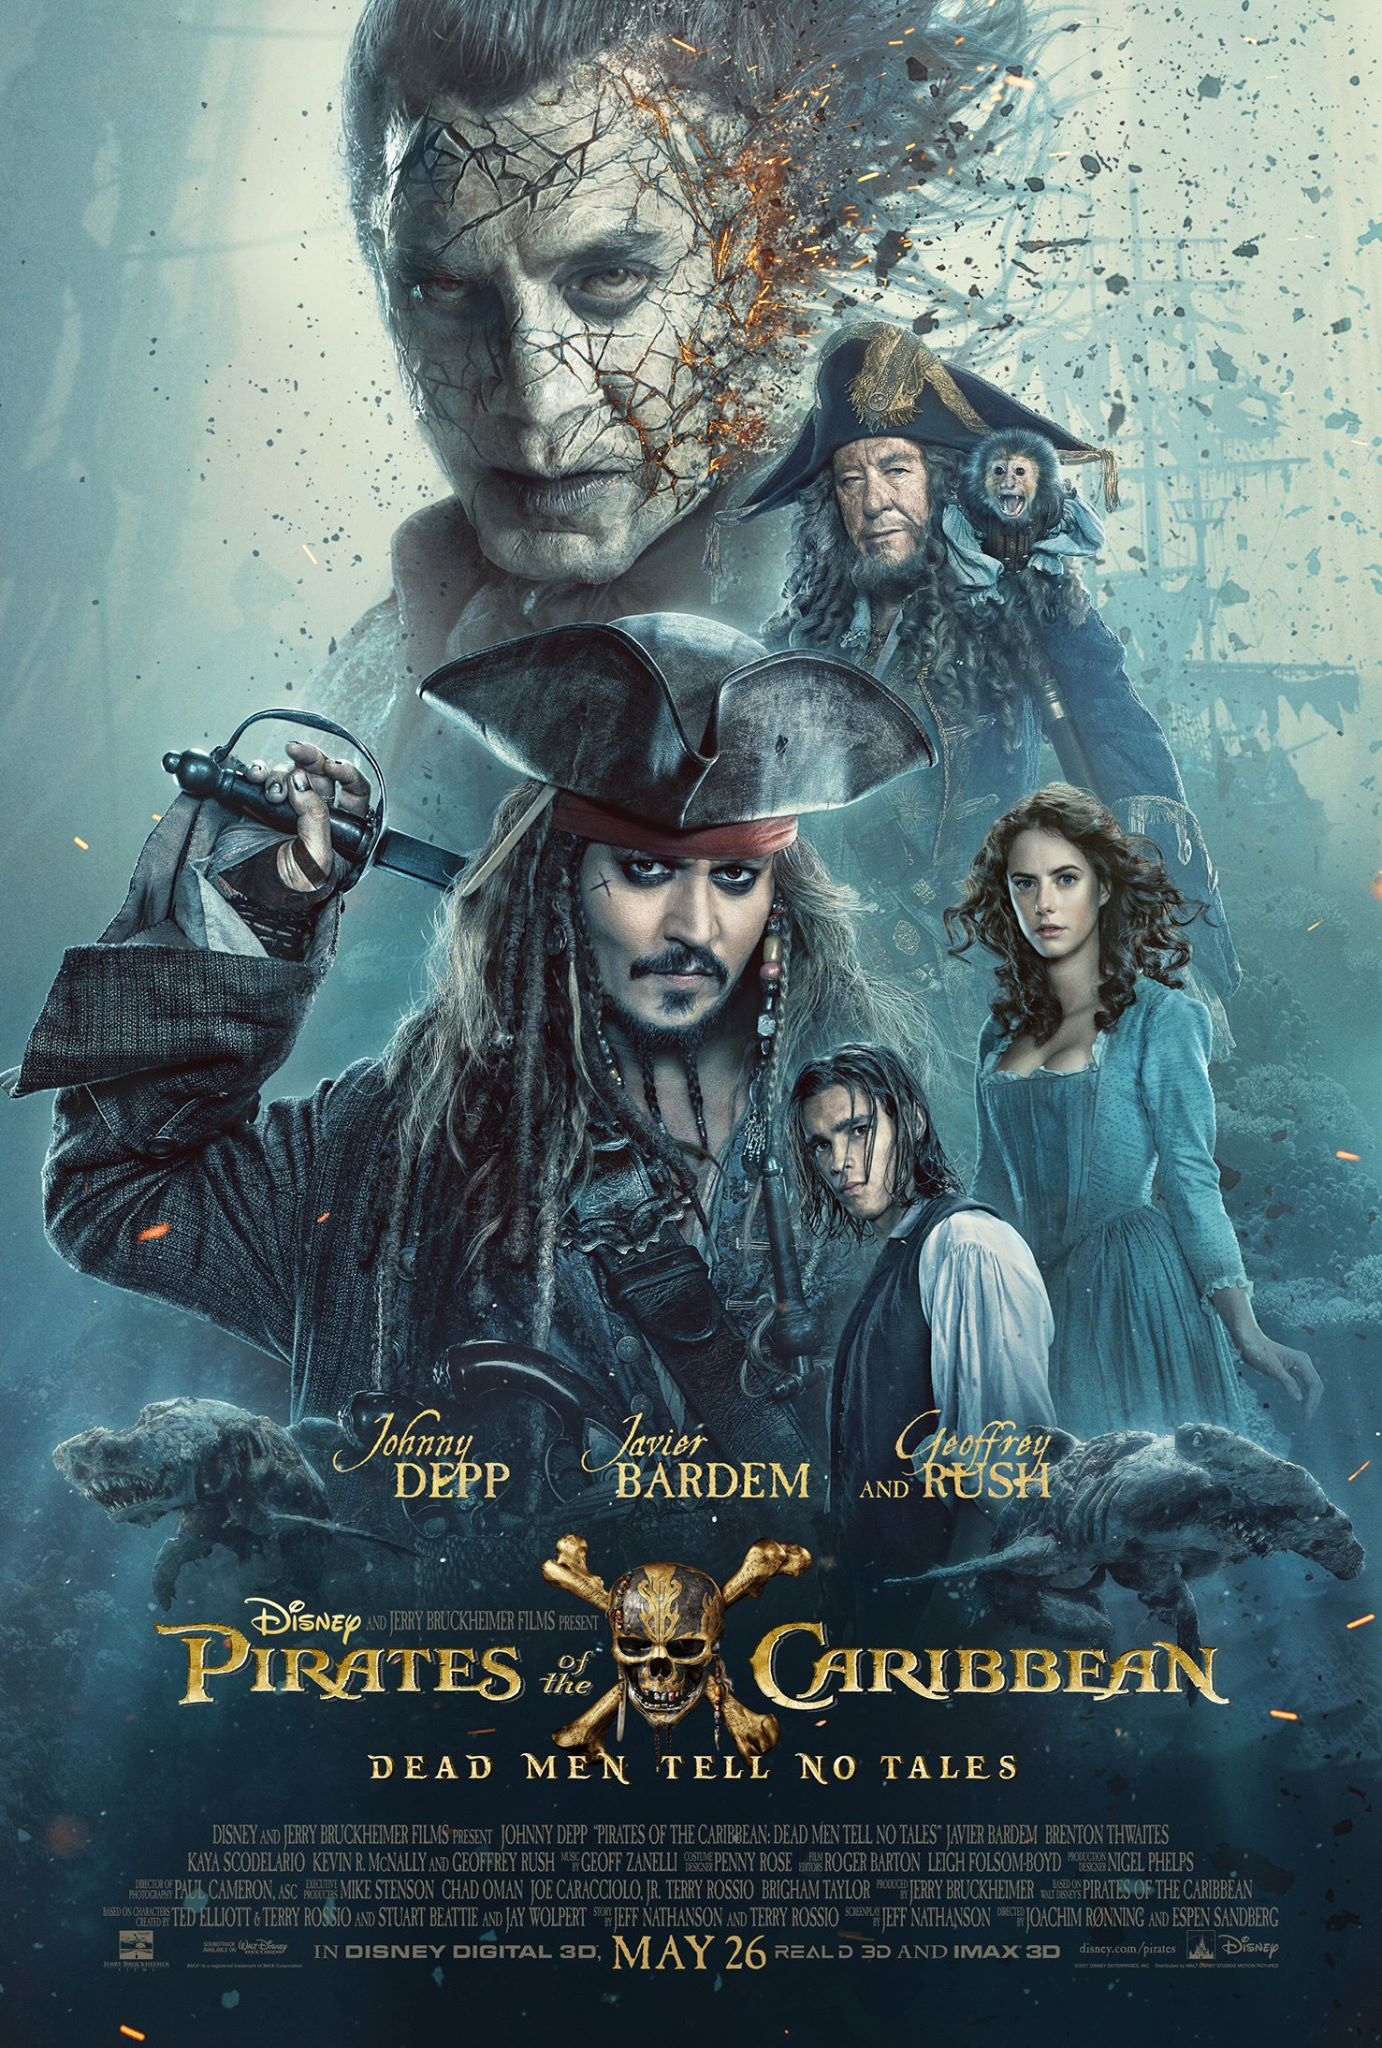 pirates of the carribbean 5 poster dead men tell no tales